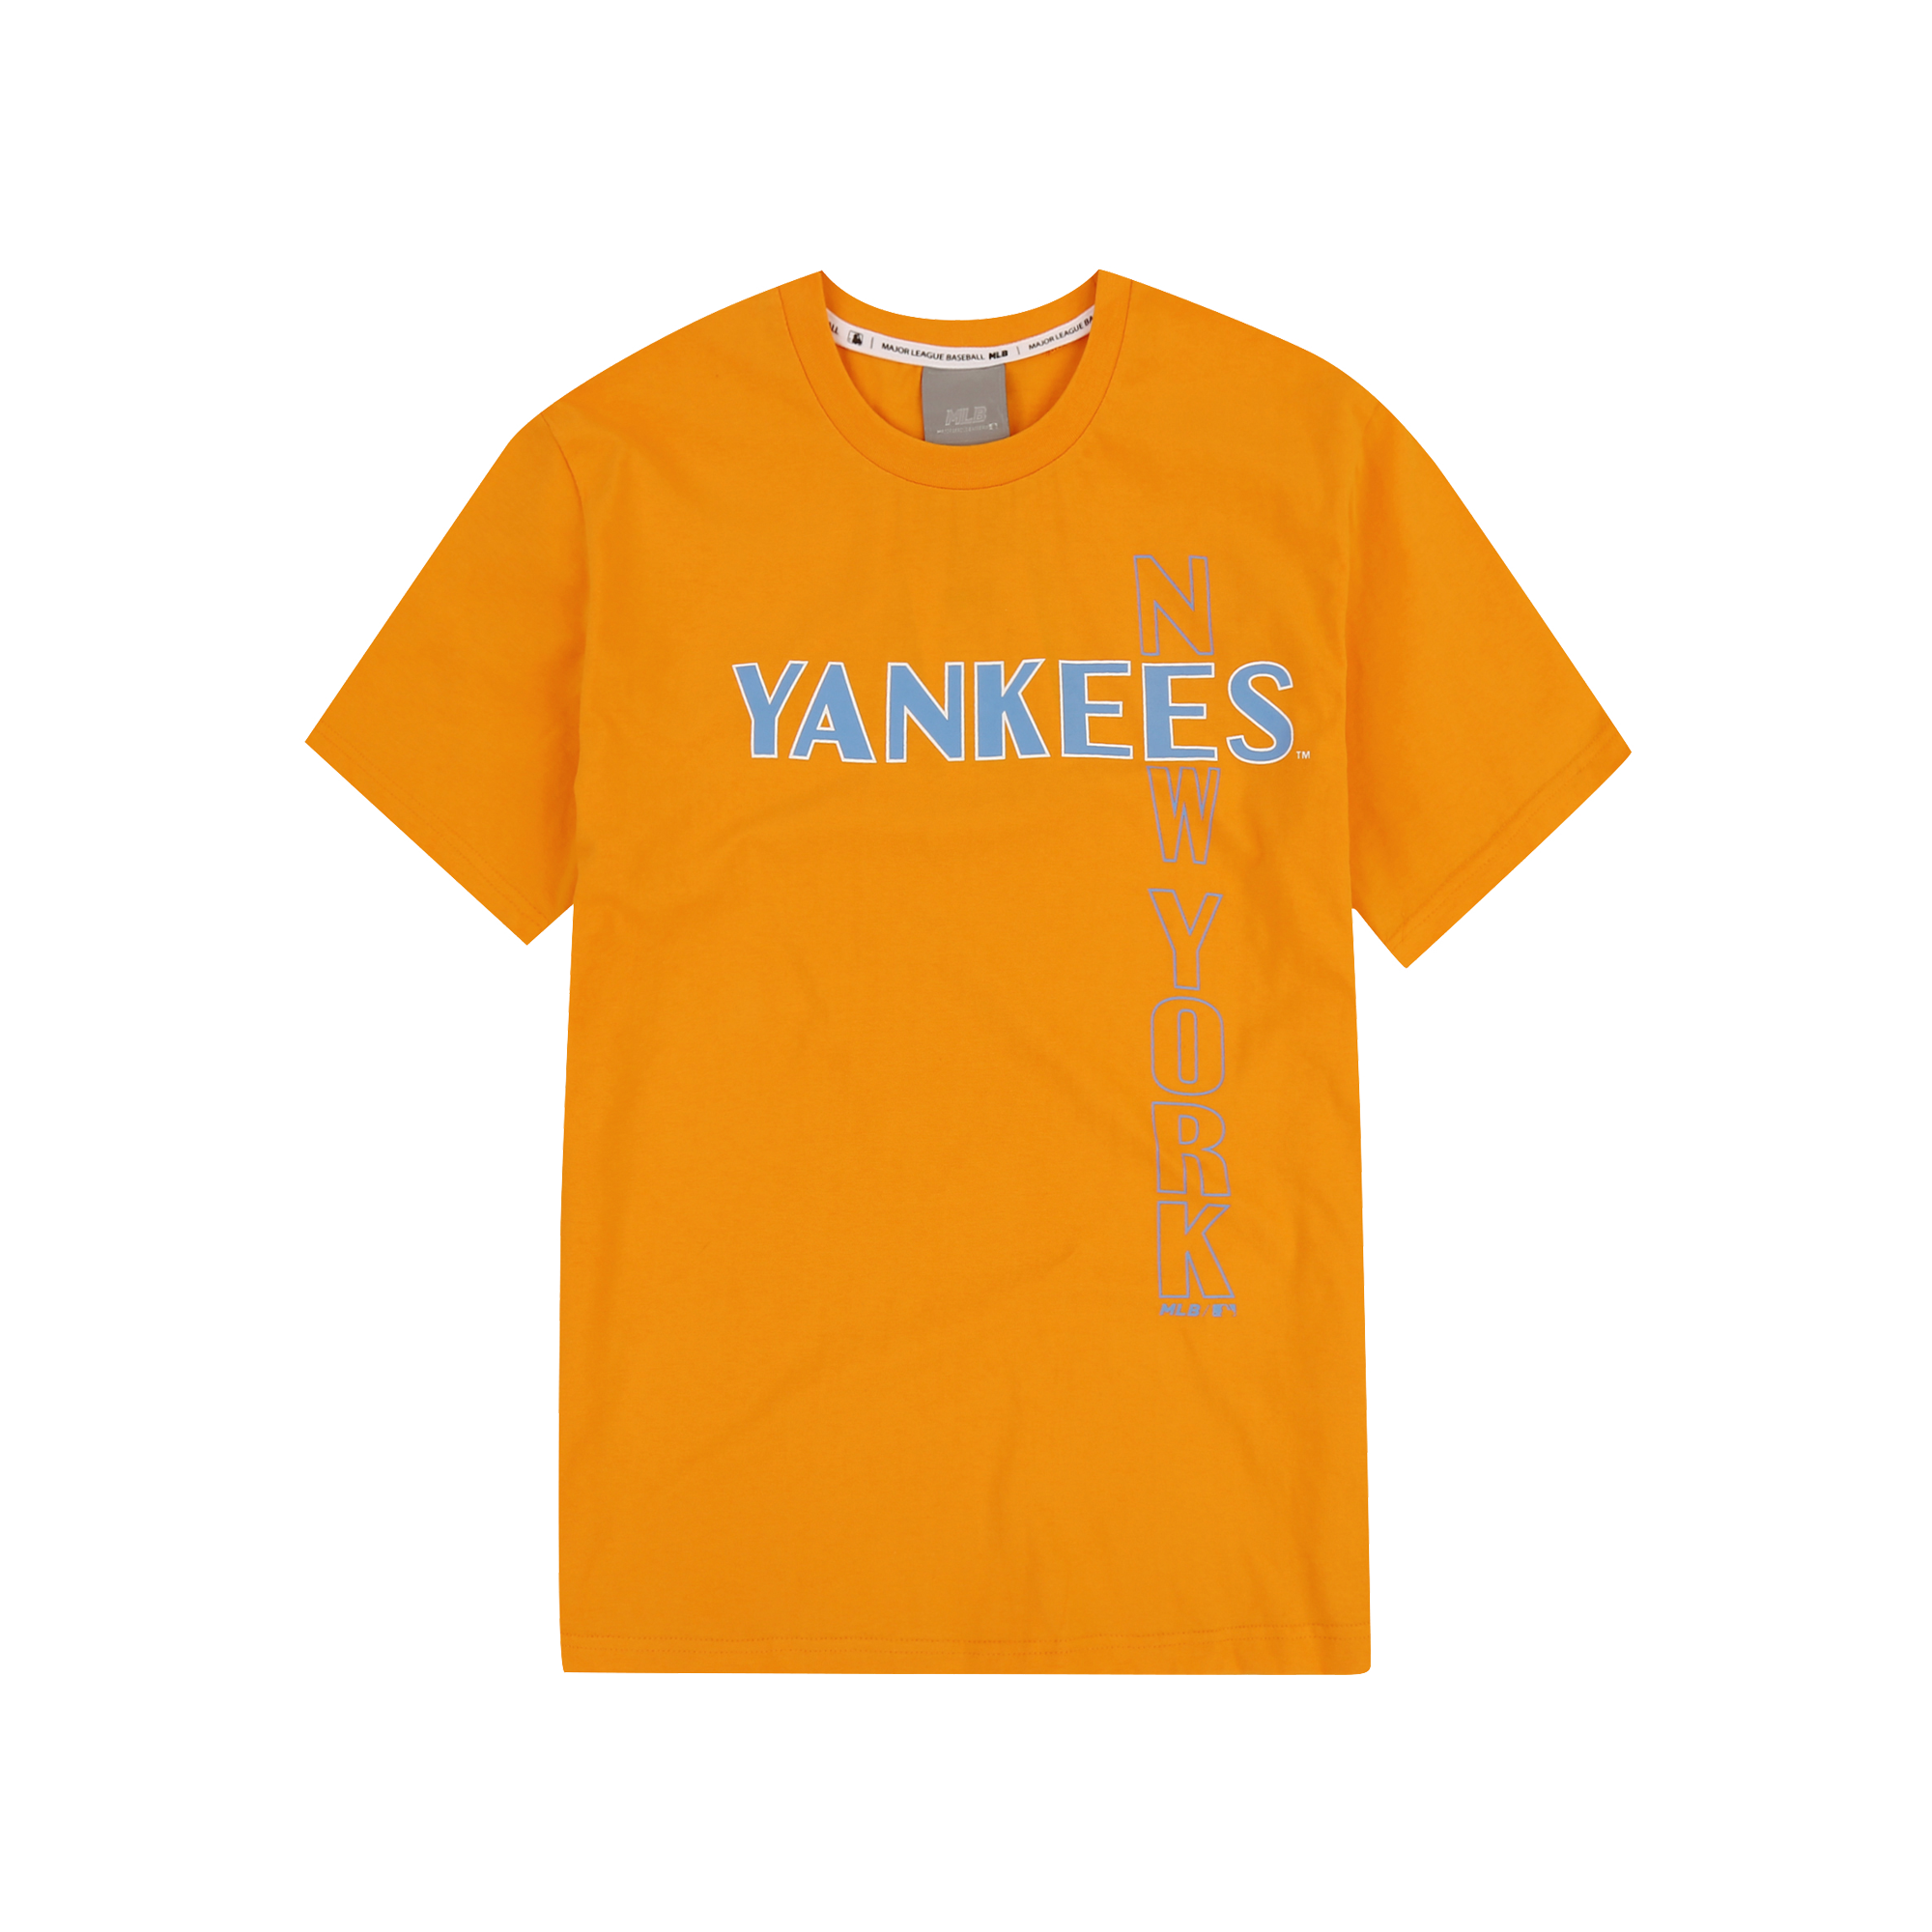 NEW YORK YANKEES CROSS LETTERING SHORT SLEEVE T-SHIRT